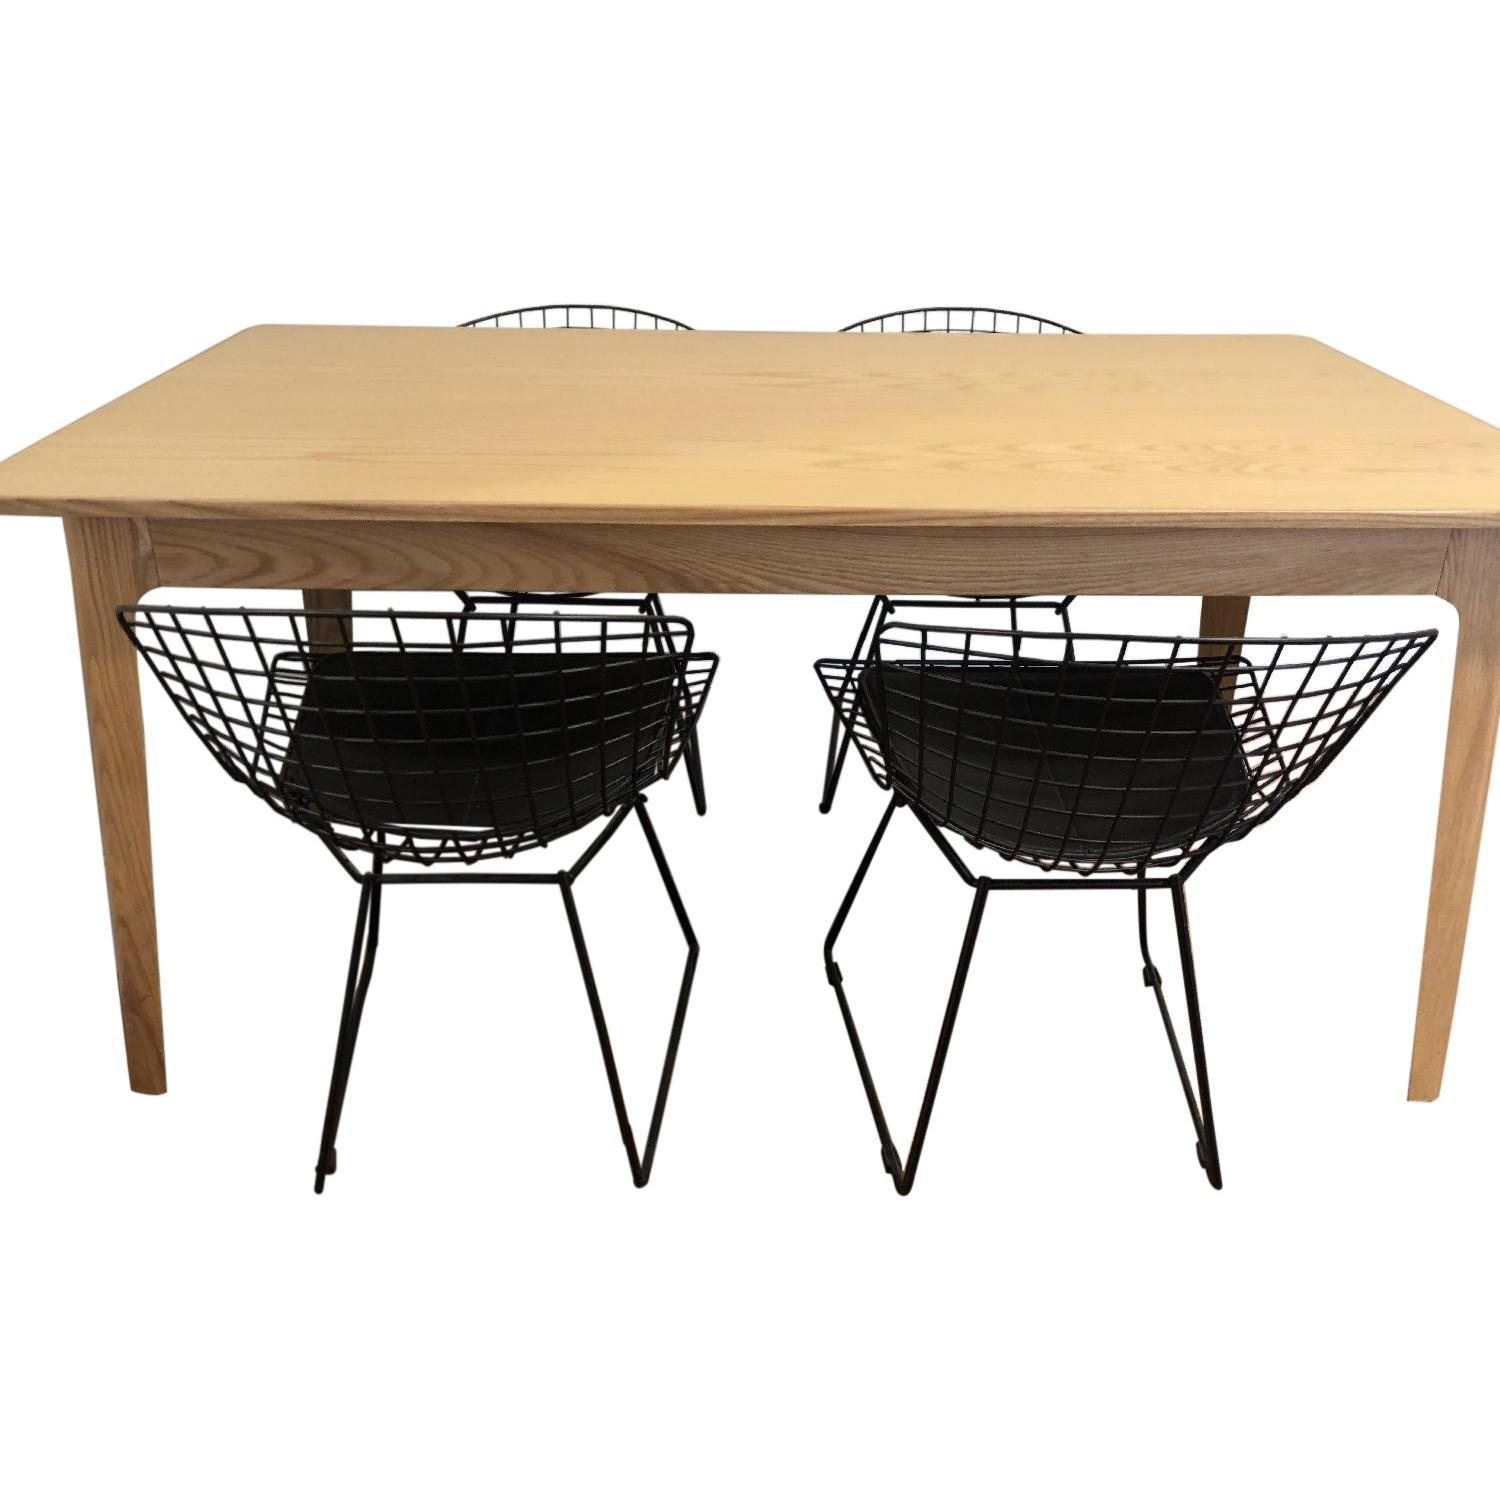 InMod Dining Table w/ 4 Chairs - image-0